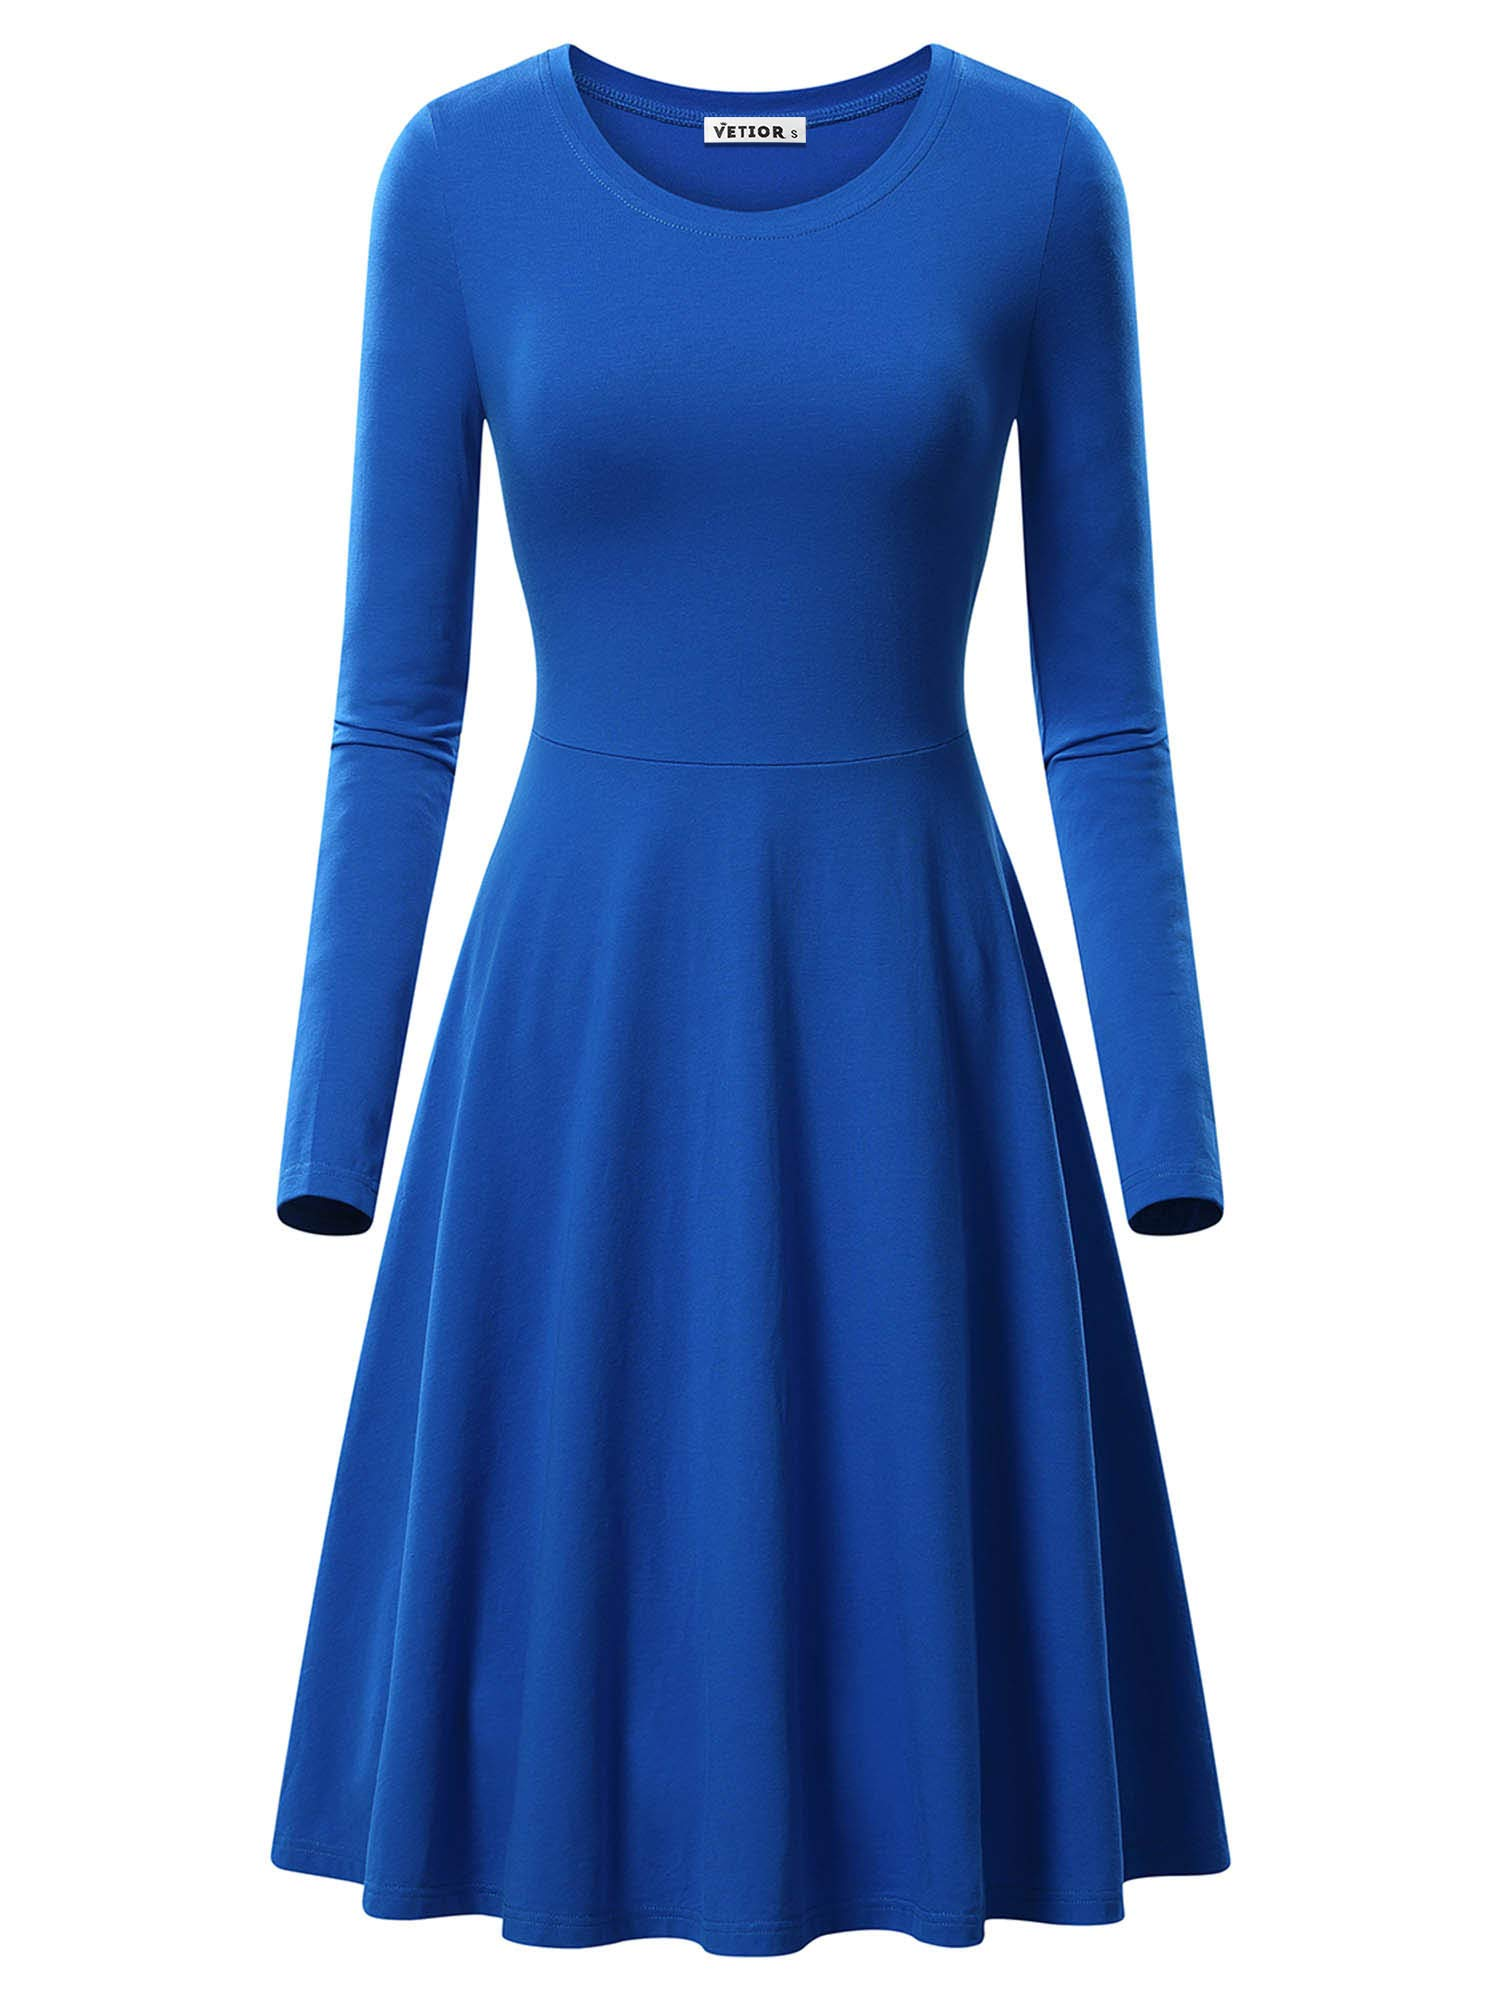 Available at Amazon: VETIOR Women's Long Sleeve Scoop Neck Casual Flared Midi Swing Dress